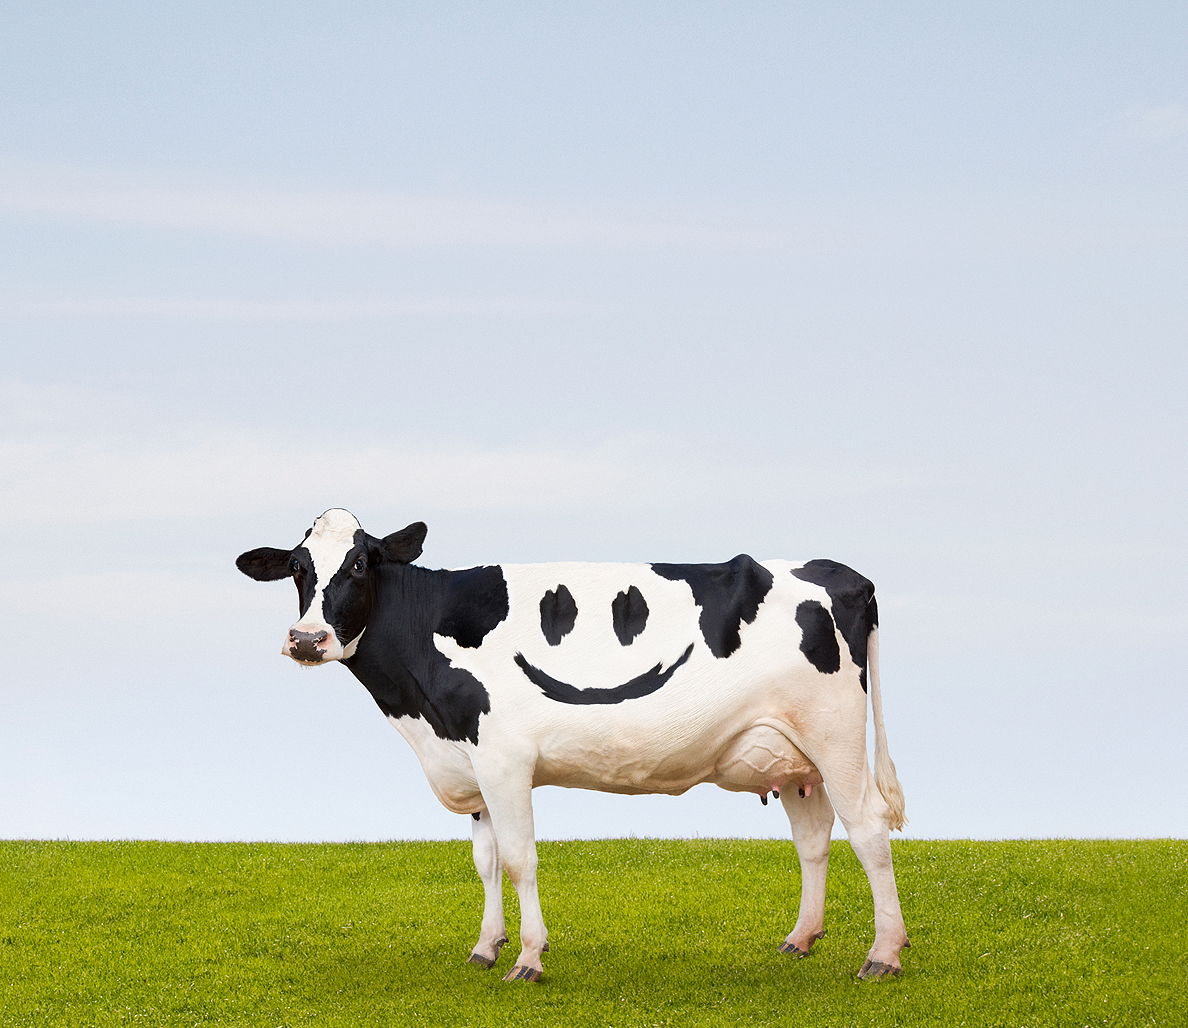 Happy Animals Make for Tastier Meat—or at Least We Like to Think They Do